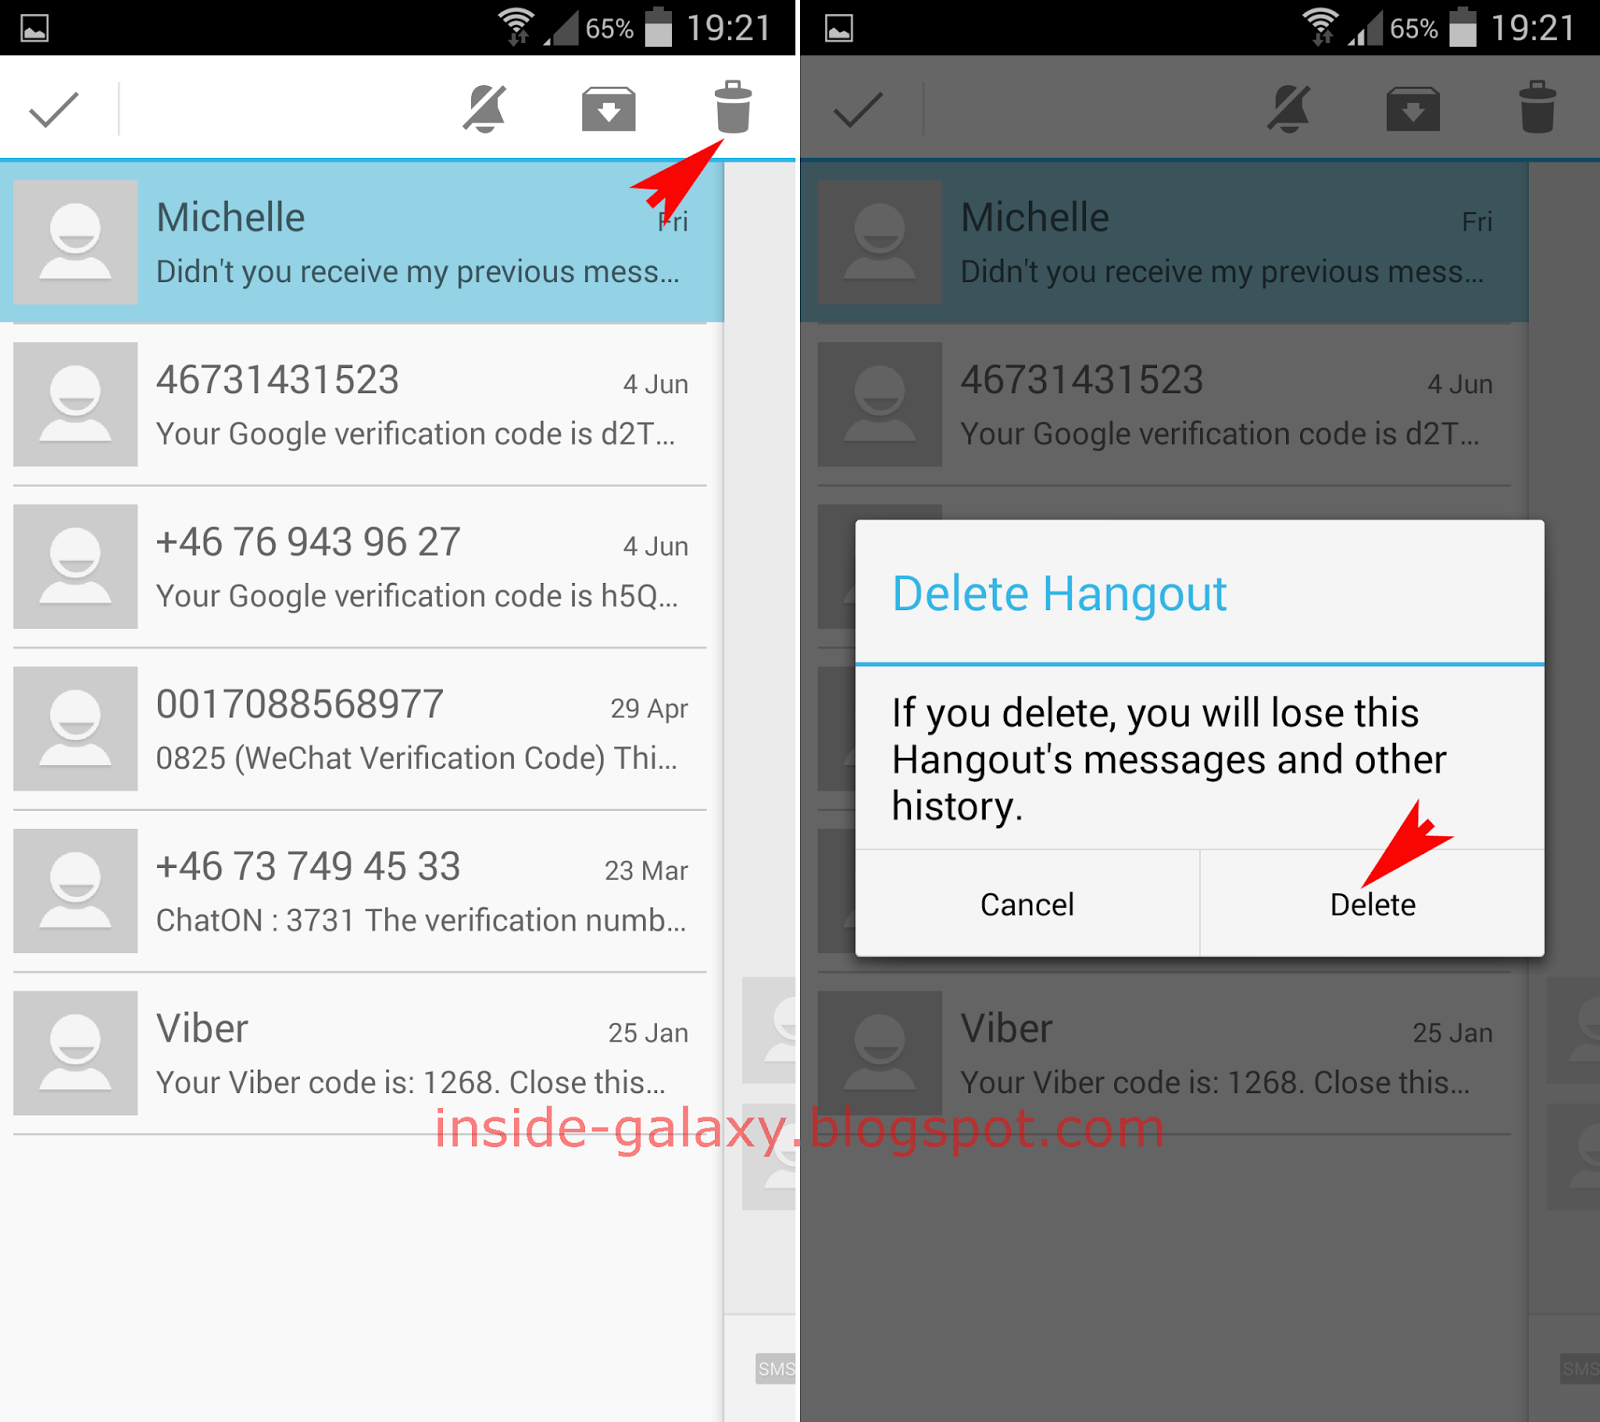 Samsung Galaxy S4: How to Delete Messages or Conversations